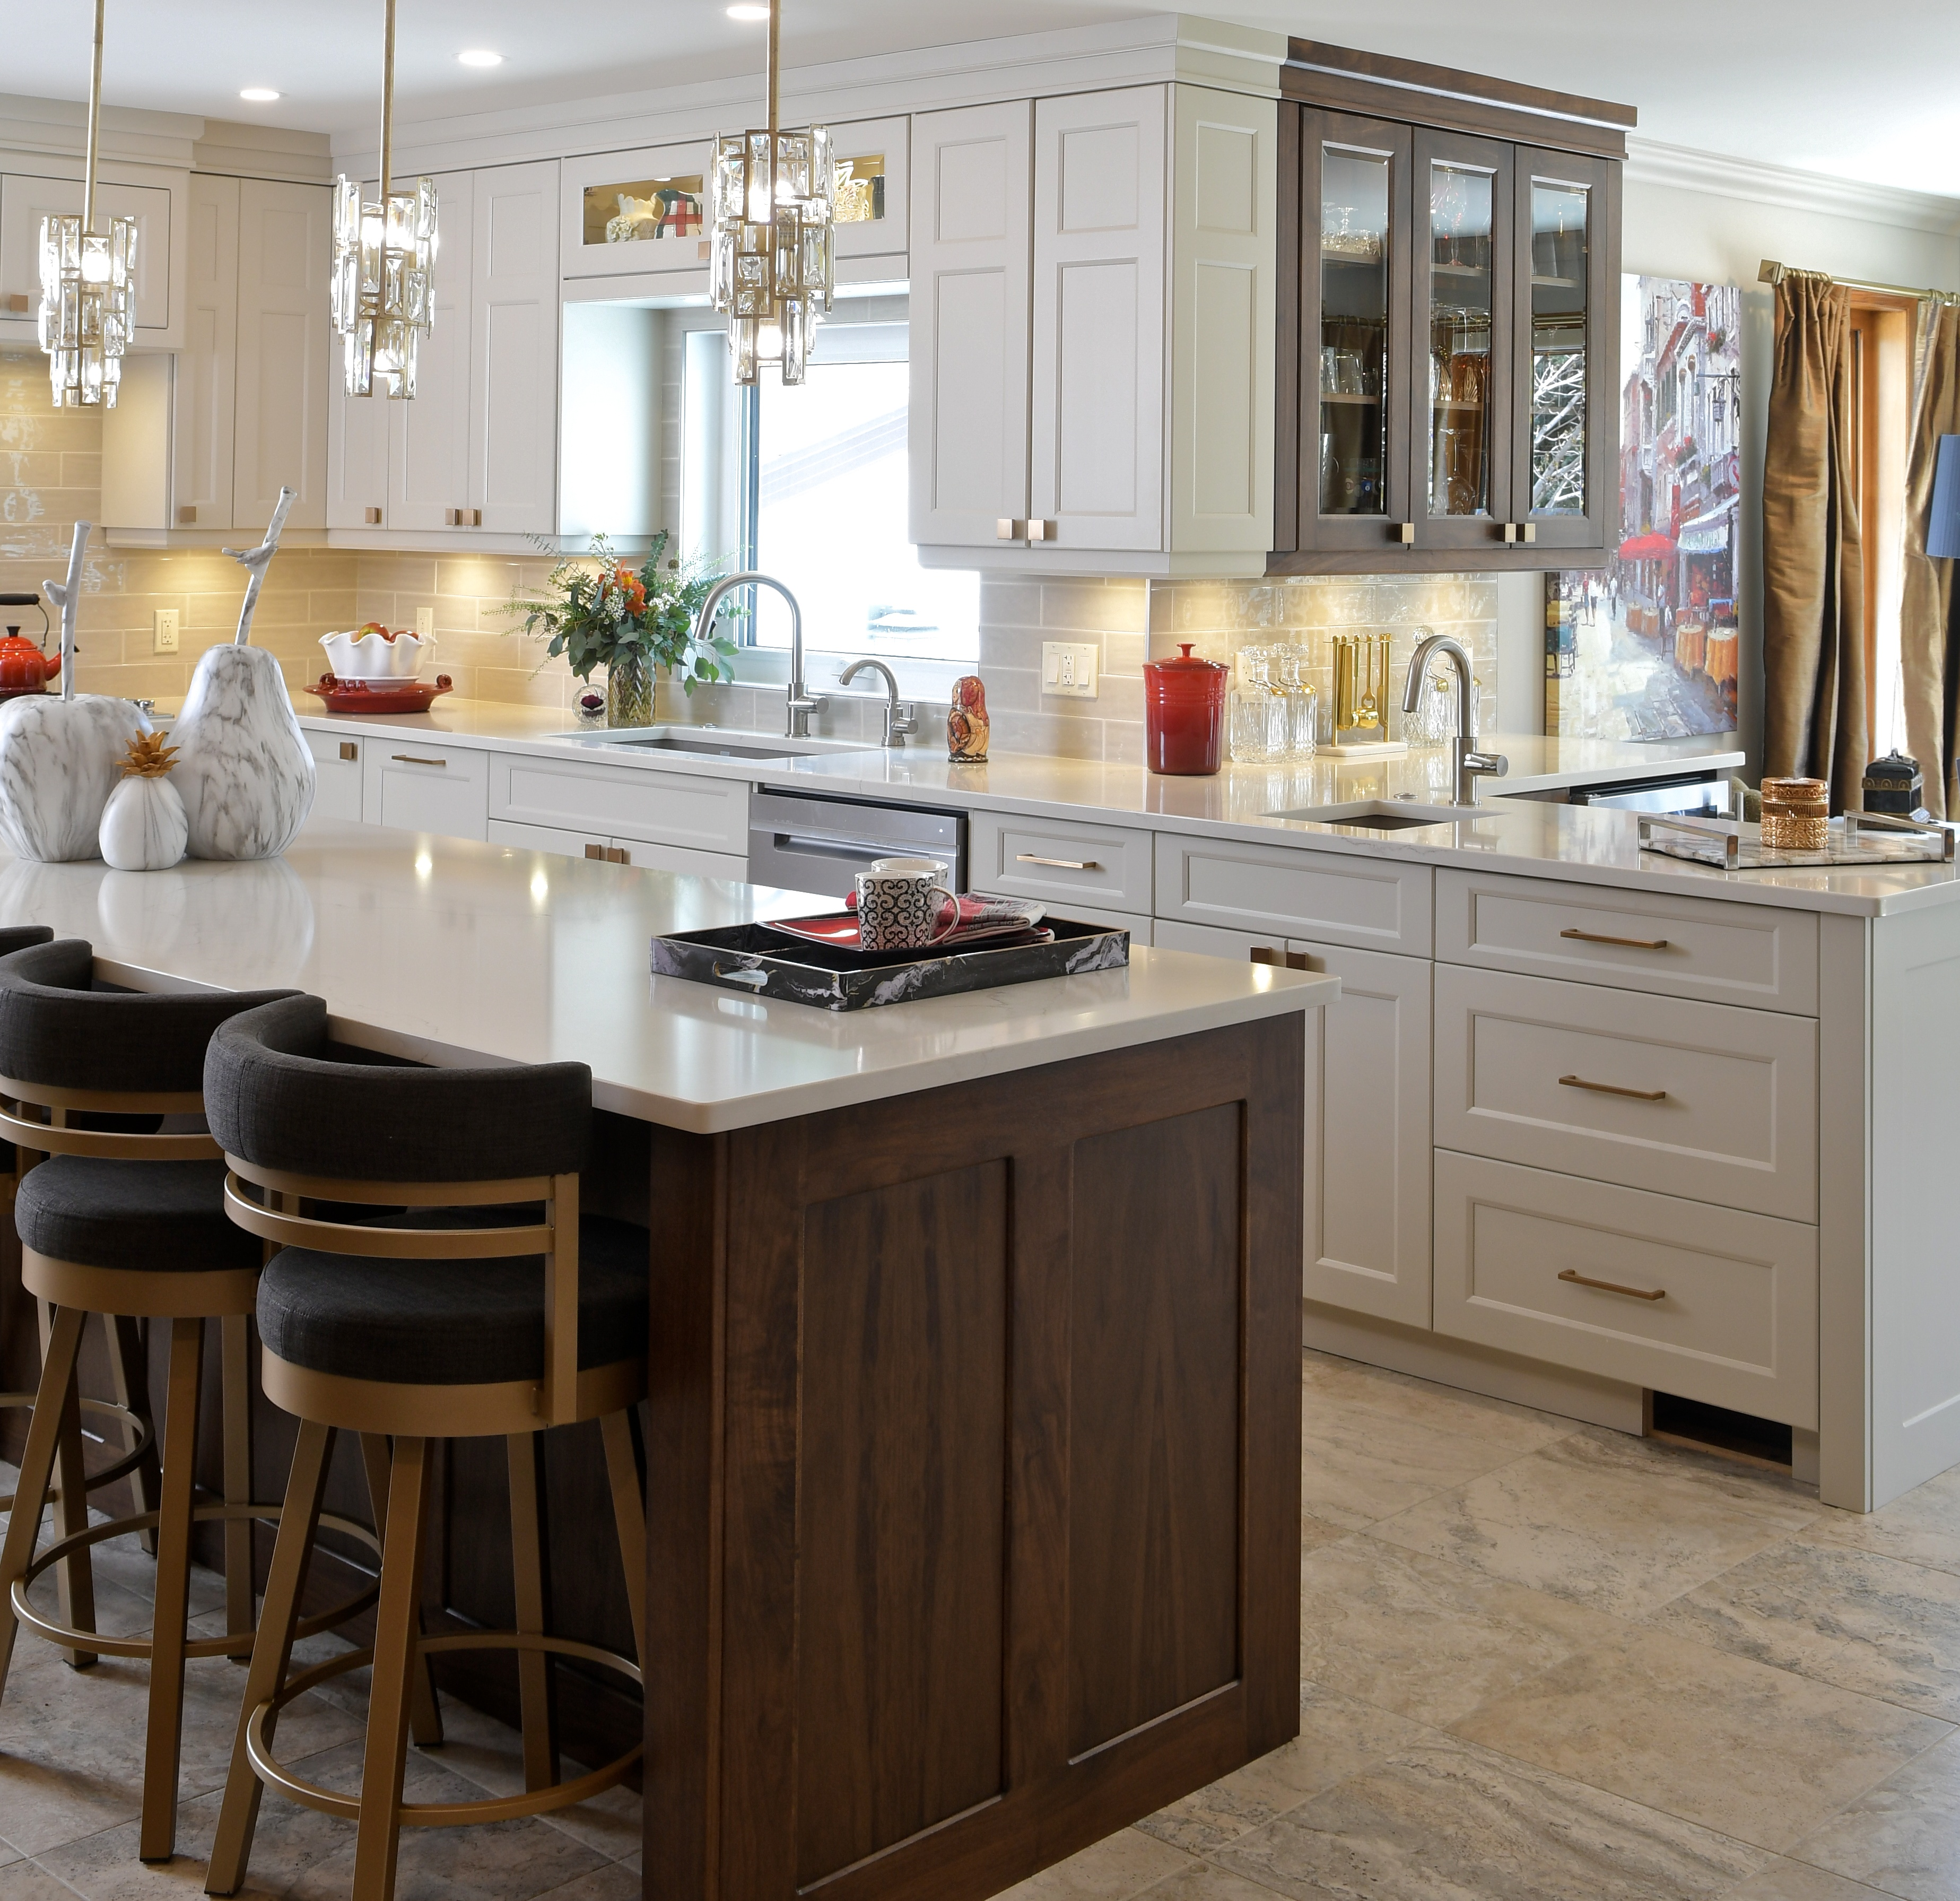 Breathe New Life into Your Home With Custom Cabinets - Image 2